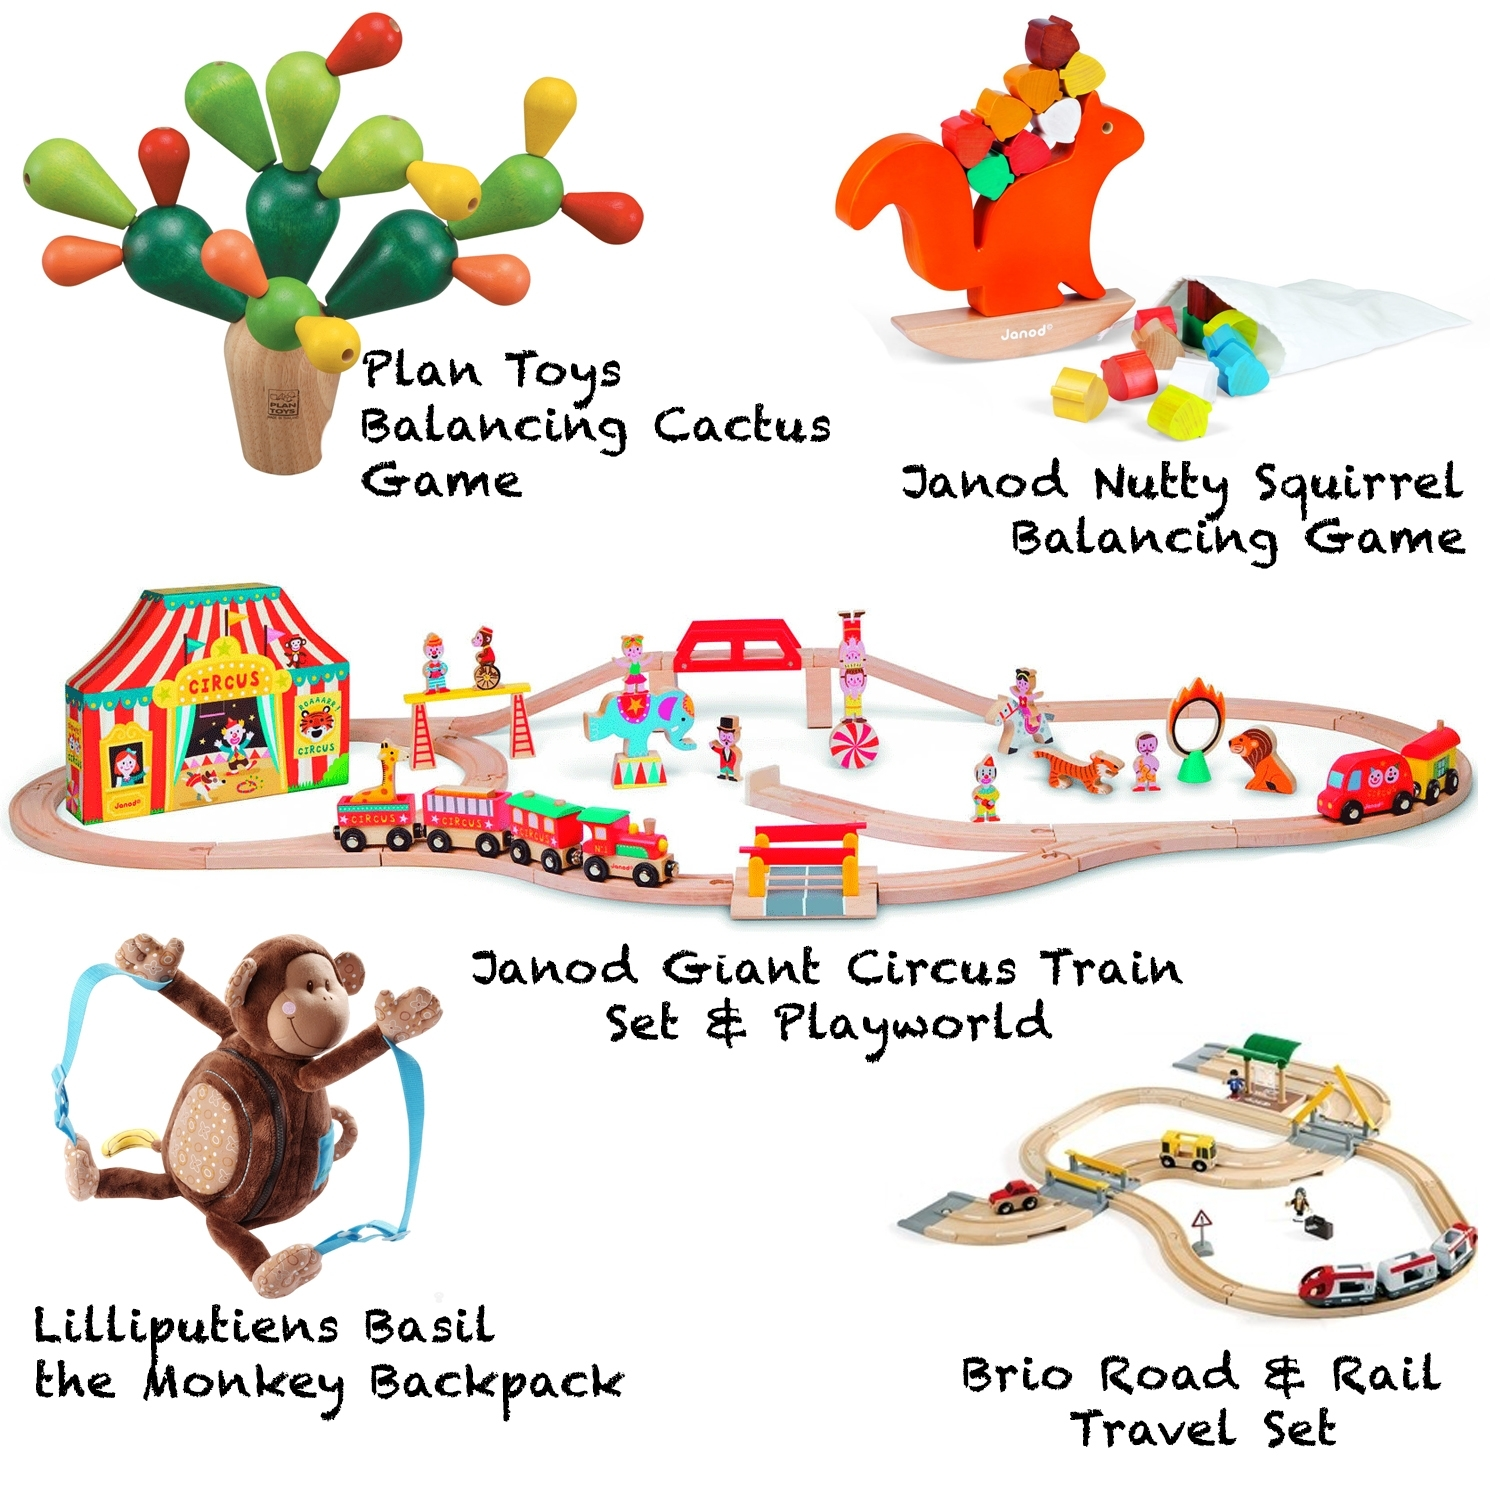 10 Perfect Christmas Ideas For 2 Year Old Boy %name